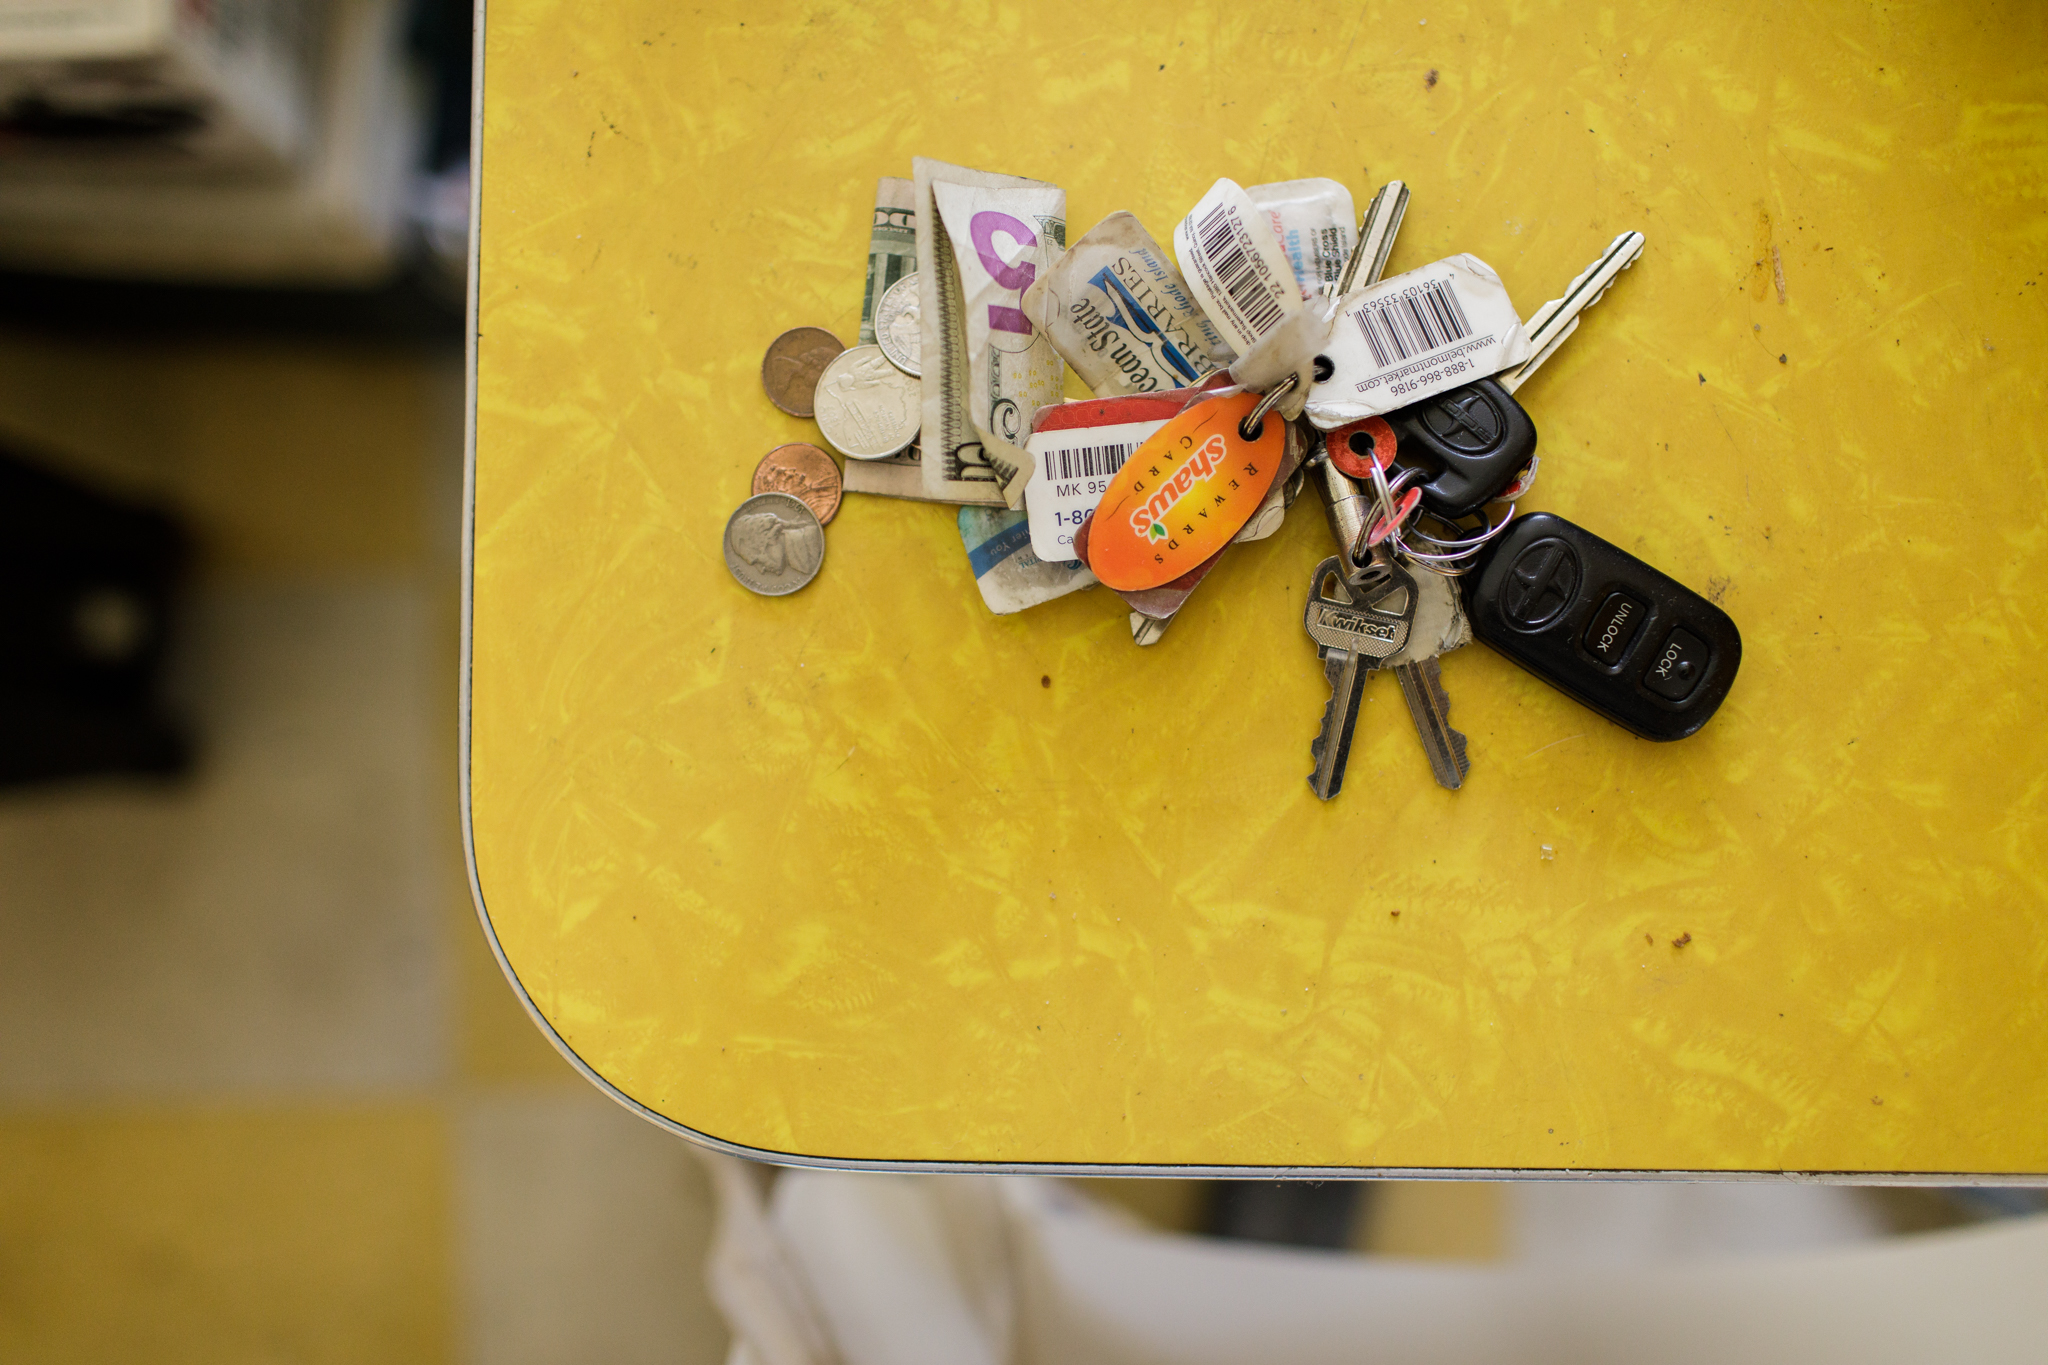 money and keys on a table